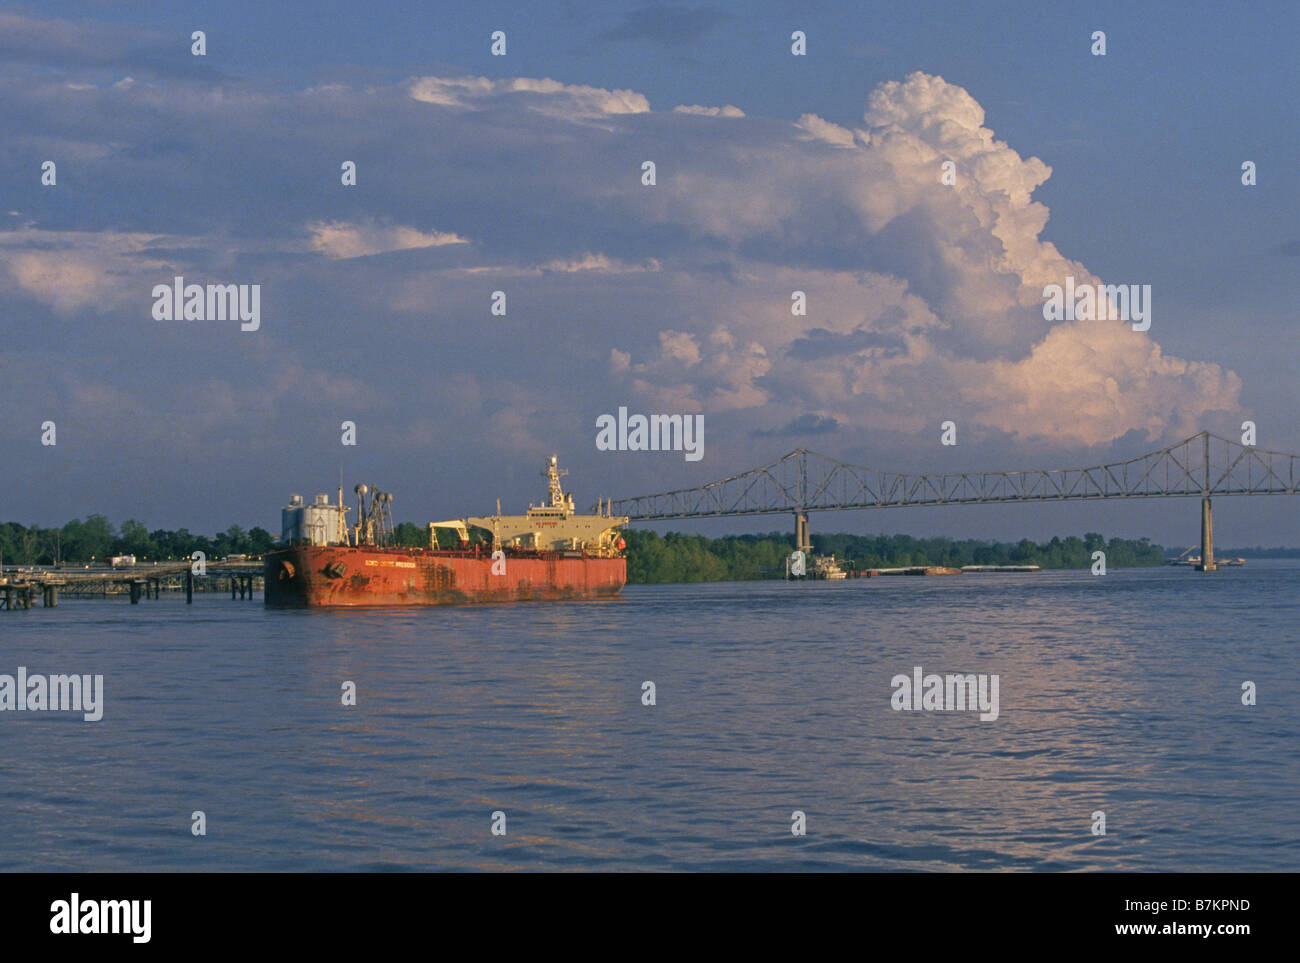 A small tanker takes on refined fuel at a dock on the Mississippi River north of New Orleans Stock Photo